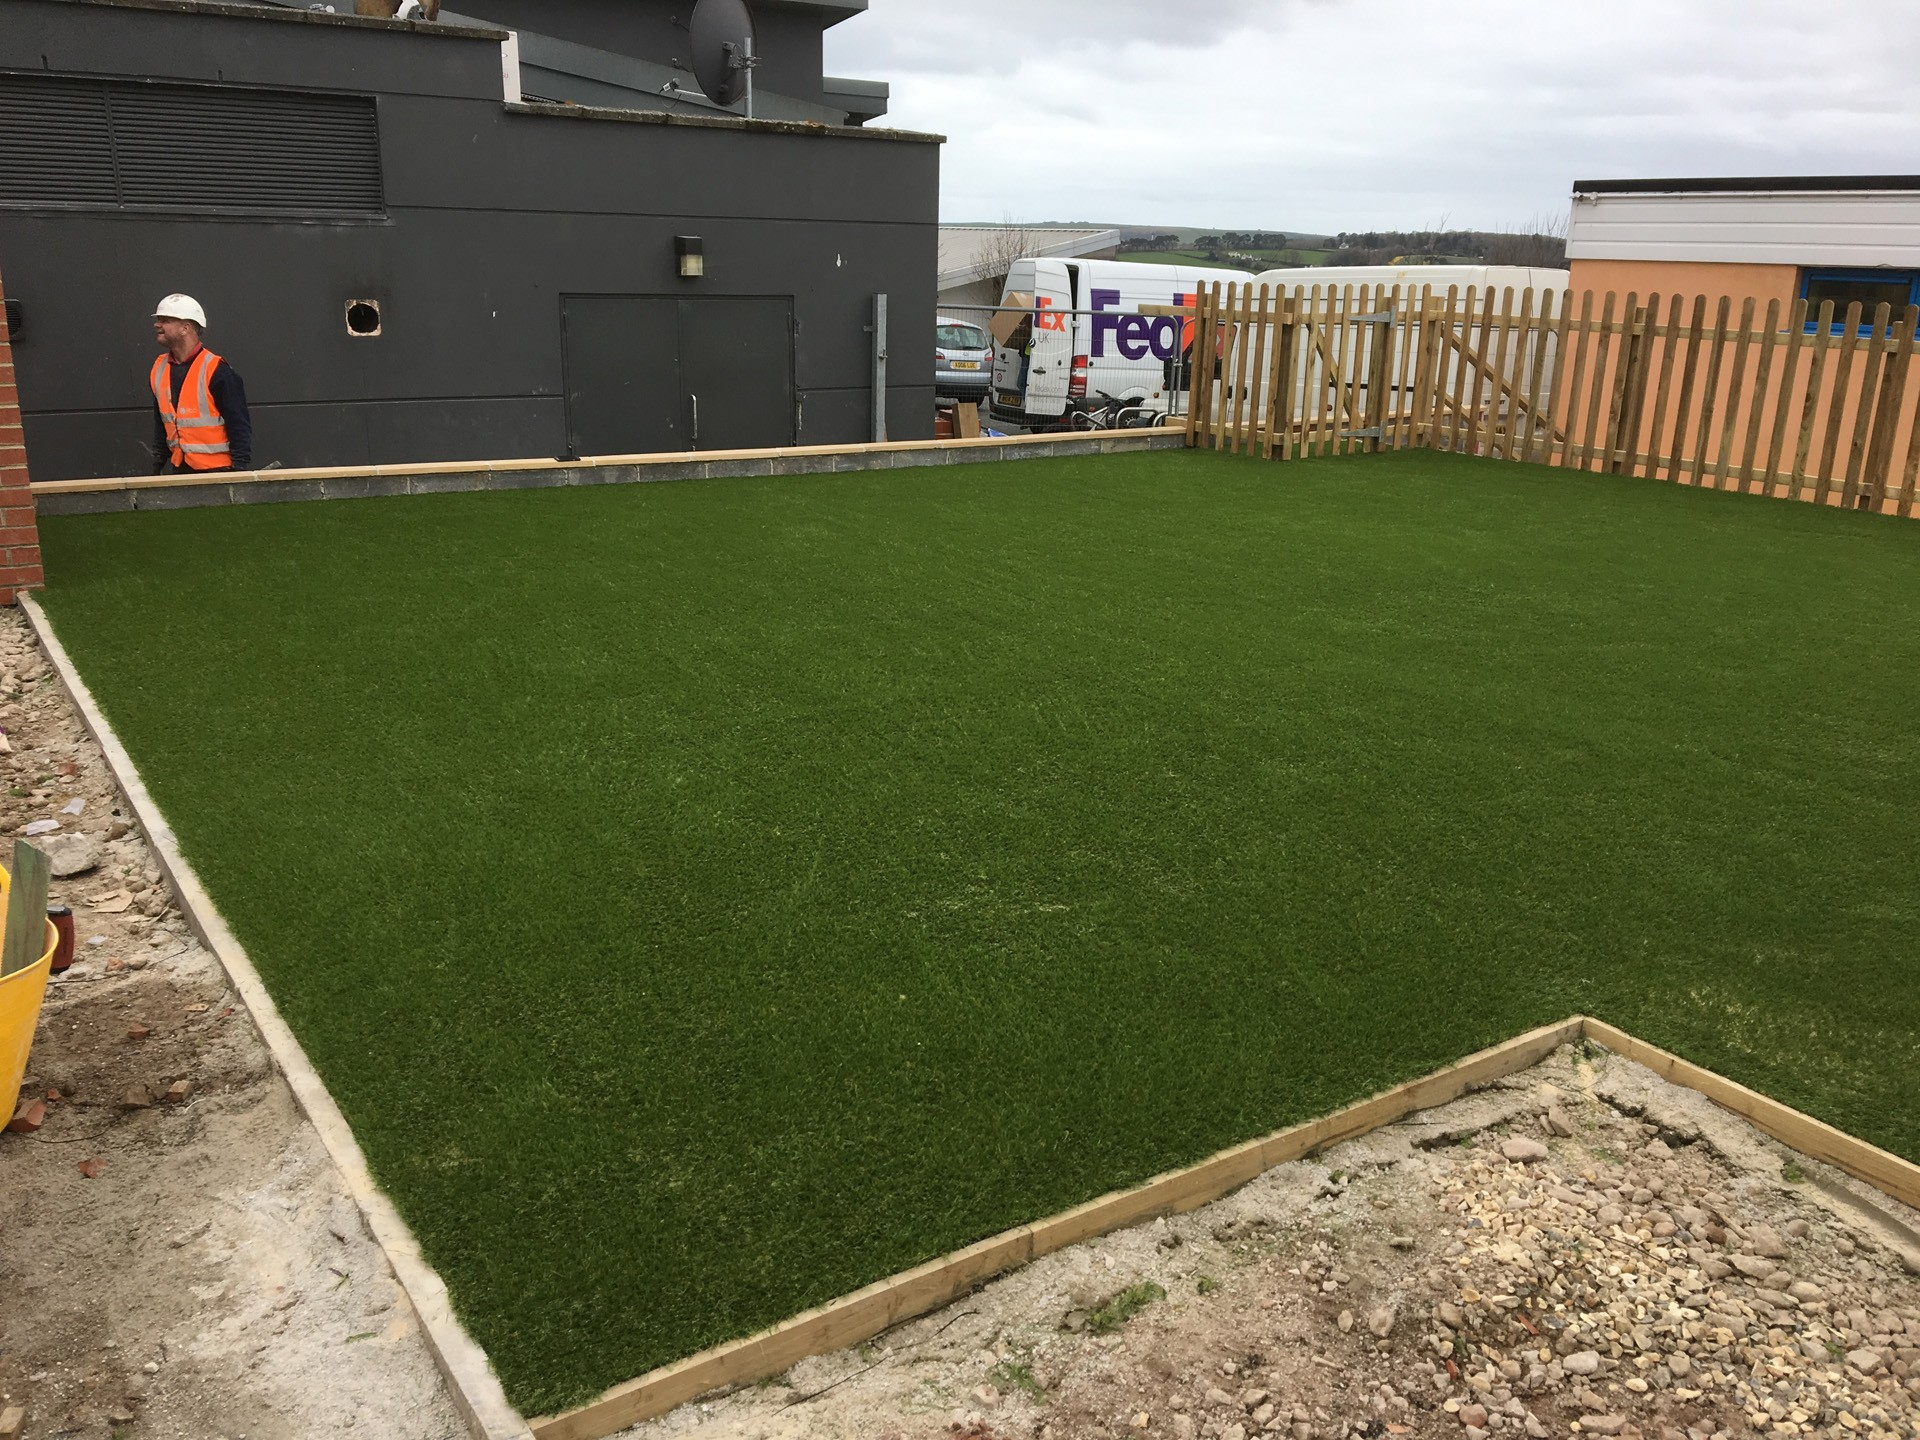 AGI Artificial Grass Installation in Progress